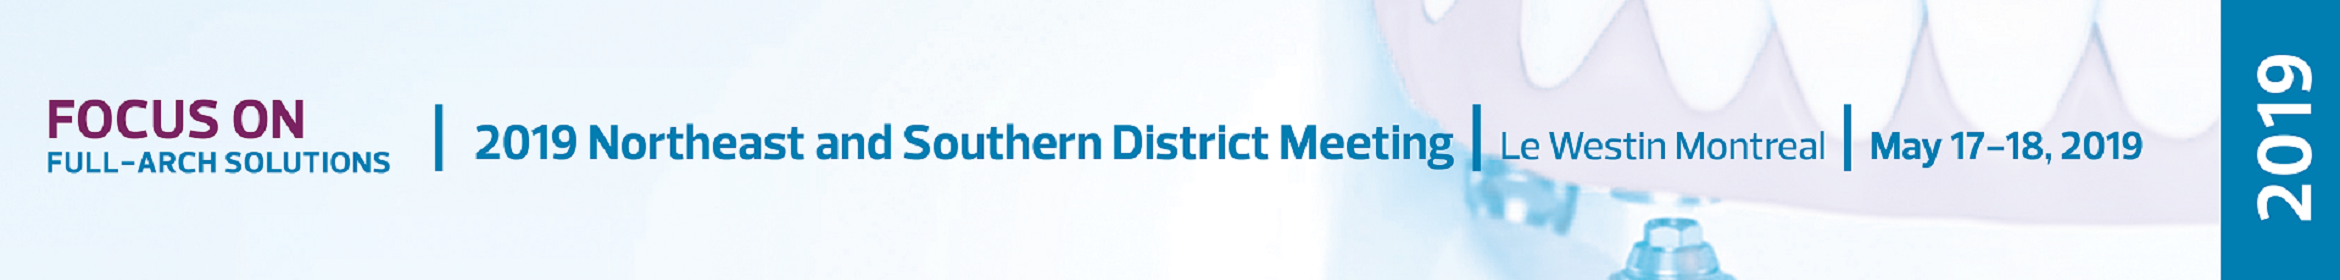 2019 Northeast District Meeting Main banner